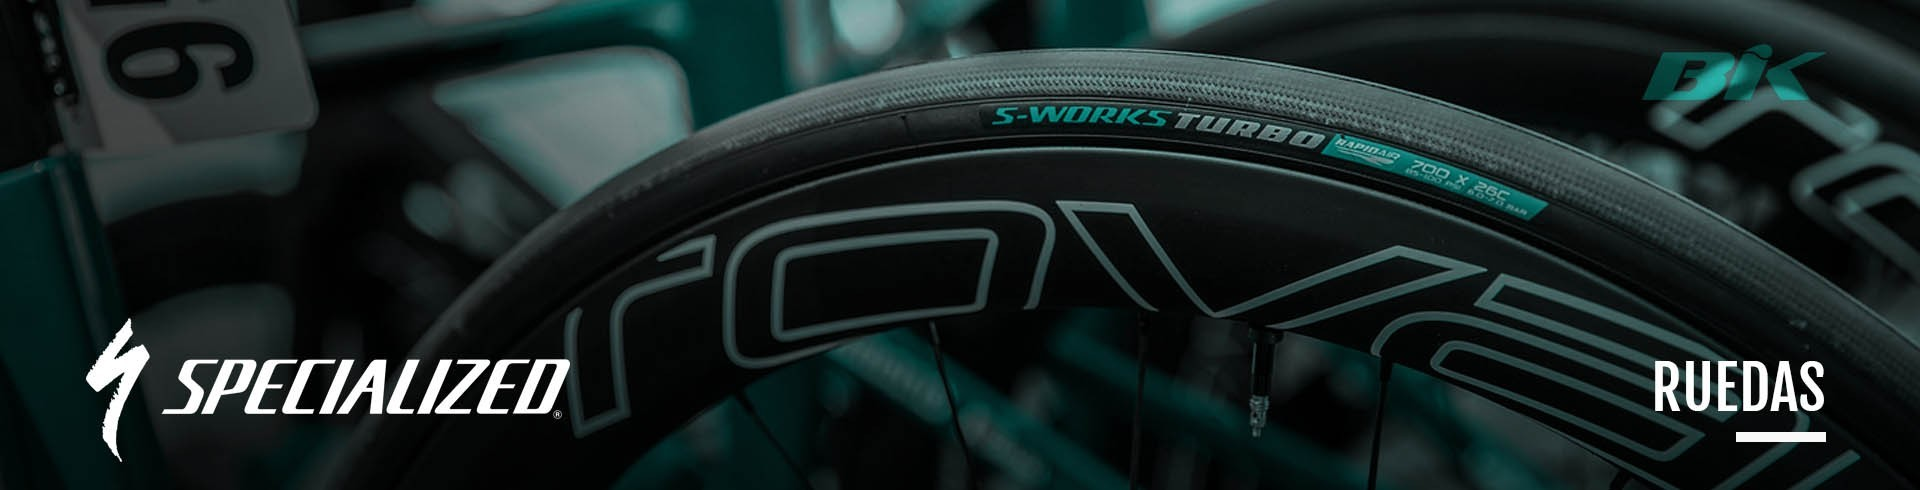 Bike wheels Roval - road